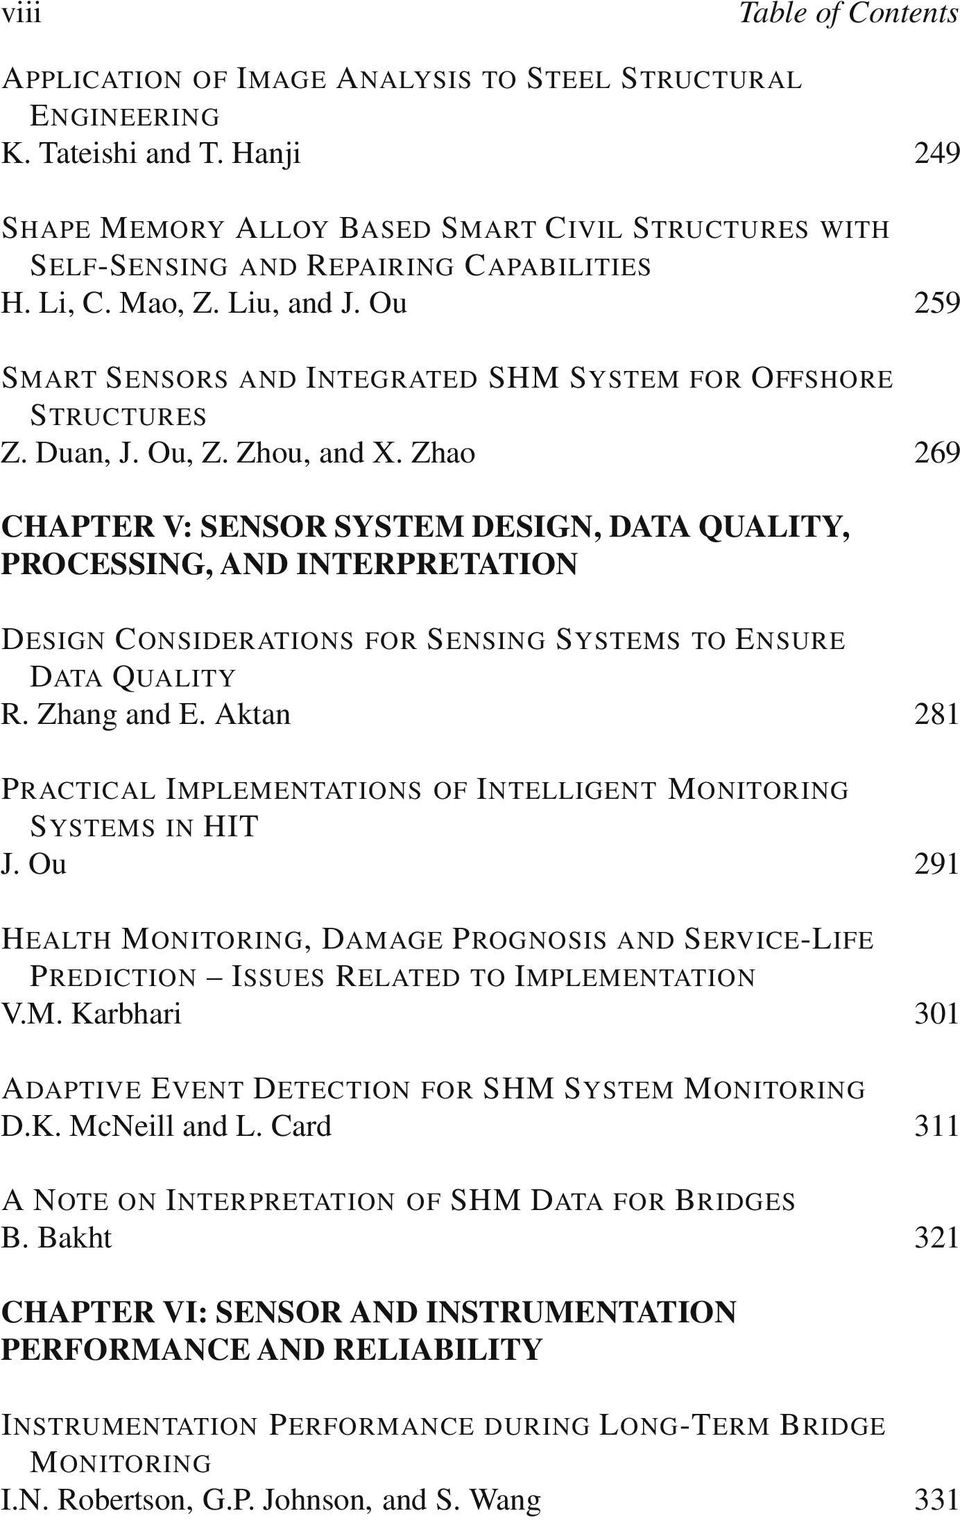 Duan, J. Ou, Z. Zhou, and X. Zhao 269 CHAPTER V: SENSOR SYSTEM DESIGN, DATA QUALITY, PROCESSING, AND INTERPRETATION DESIGN CONSIDERATIONS FOR SENSING SYSTEMS TO ENSURE DATA QUALITY R.Zhang and E.